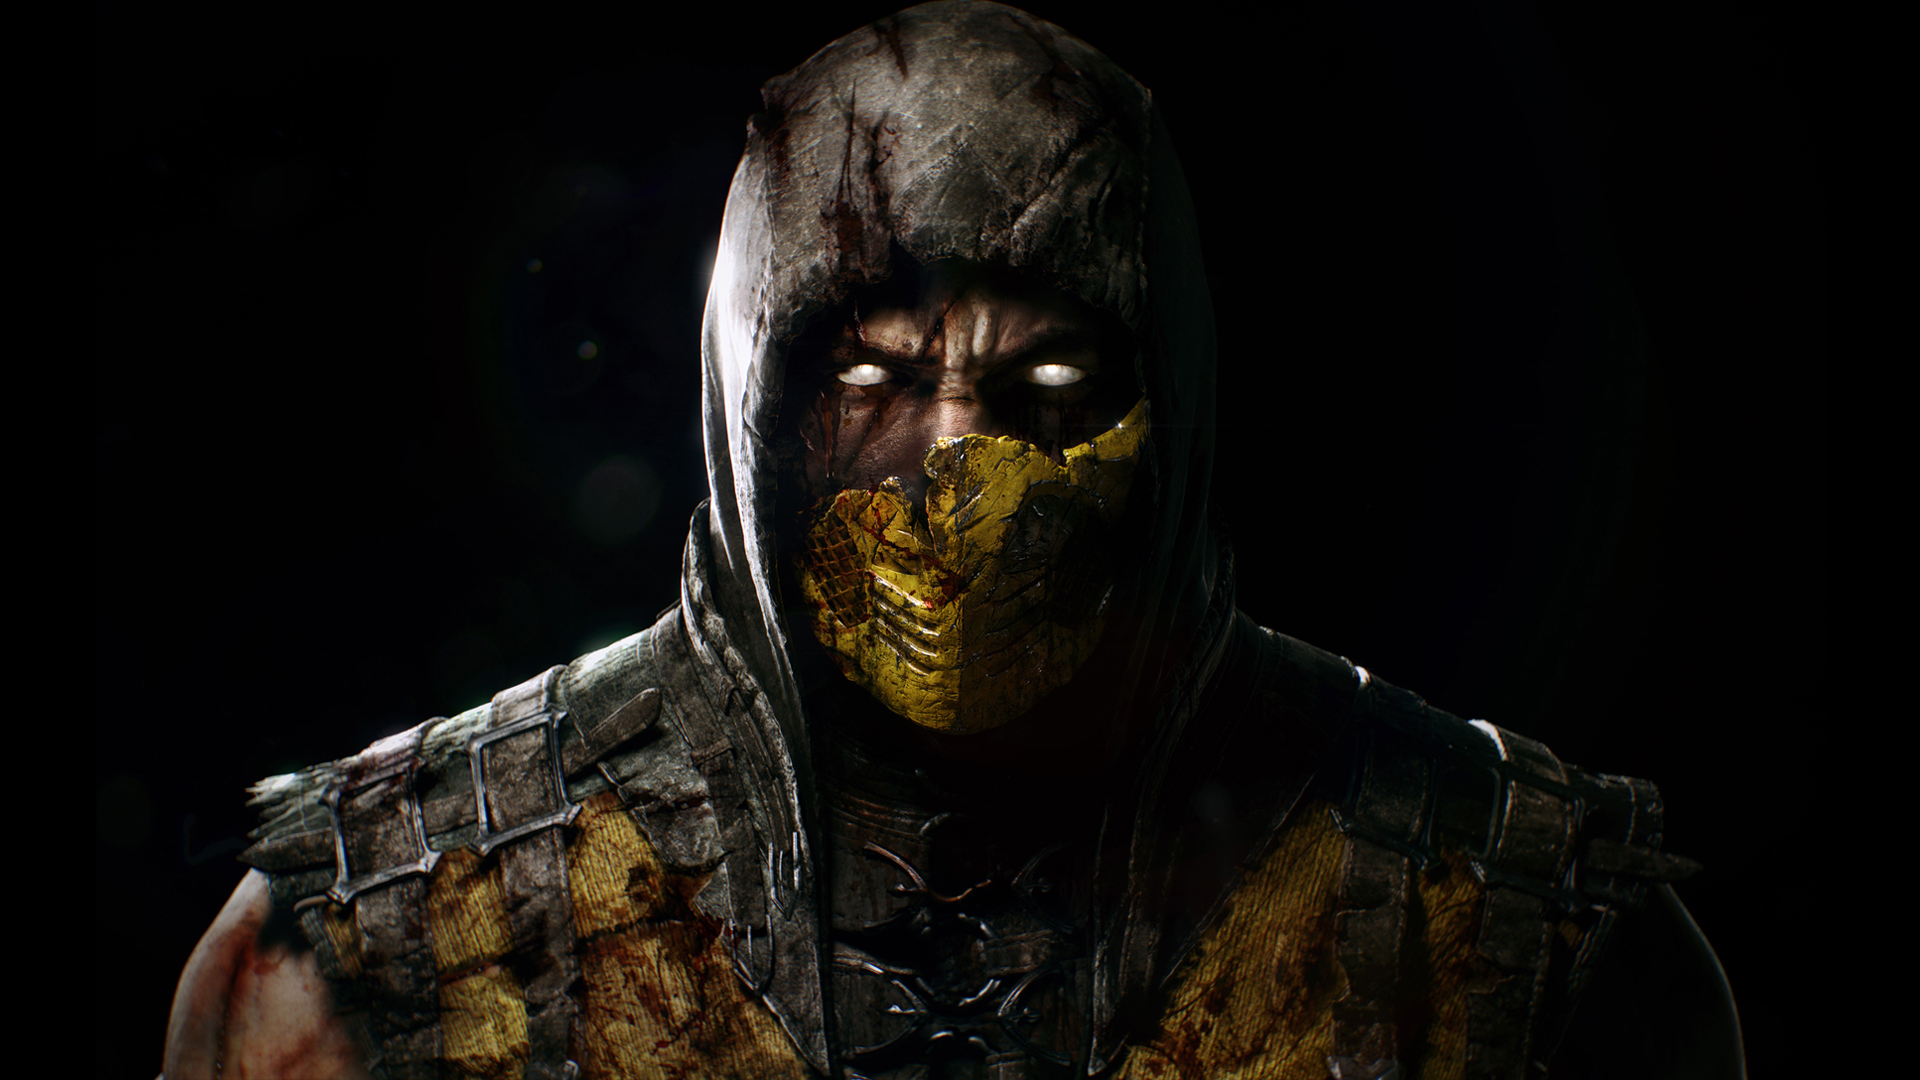 Mortal Kombat X Scorpion Ps4wallpapers Com